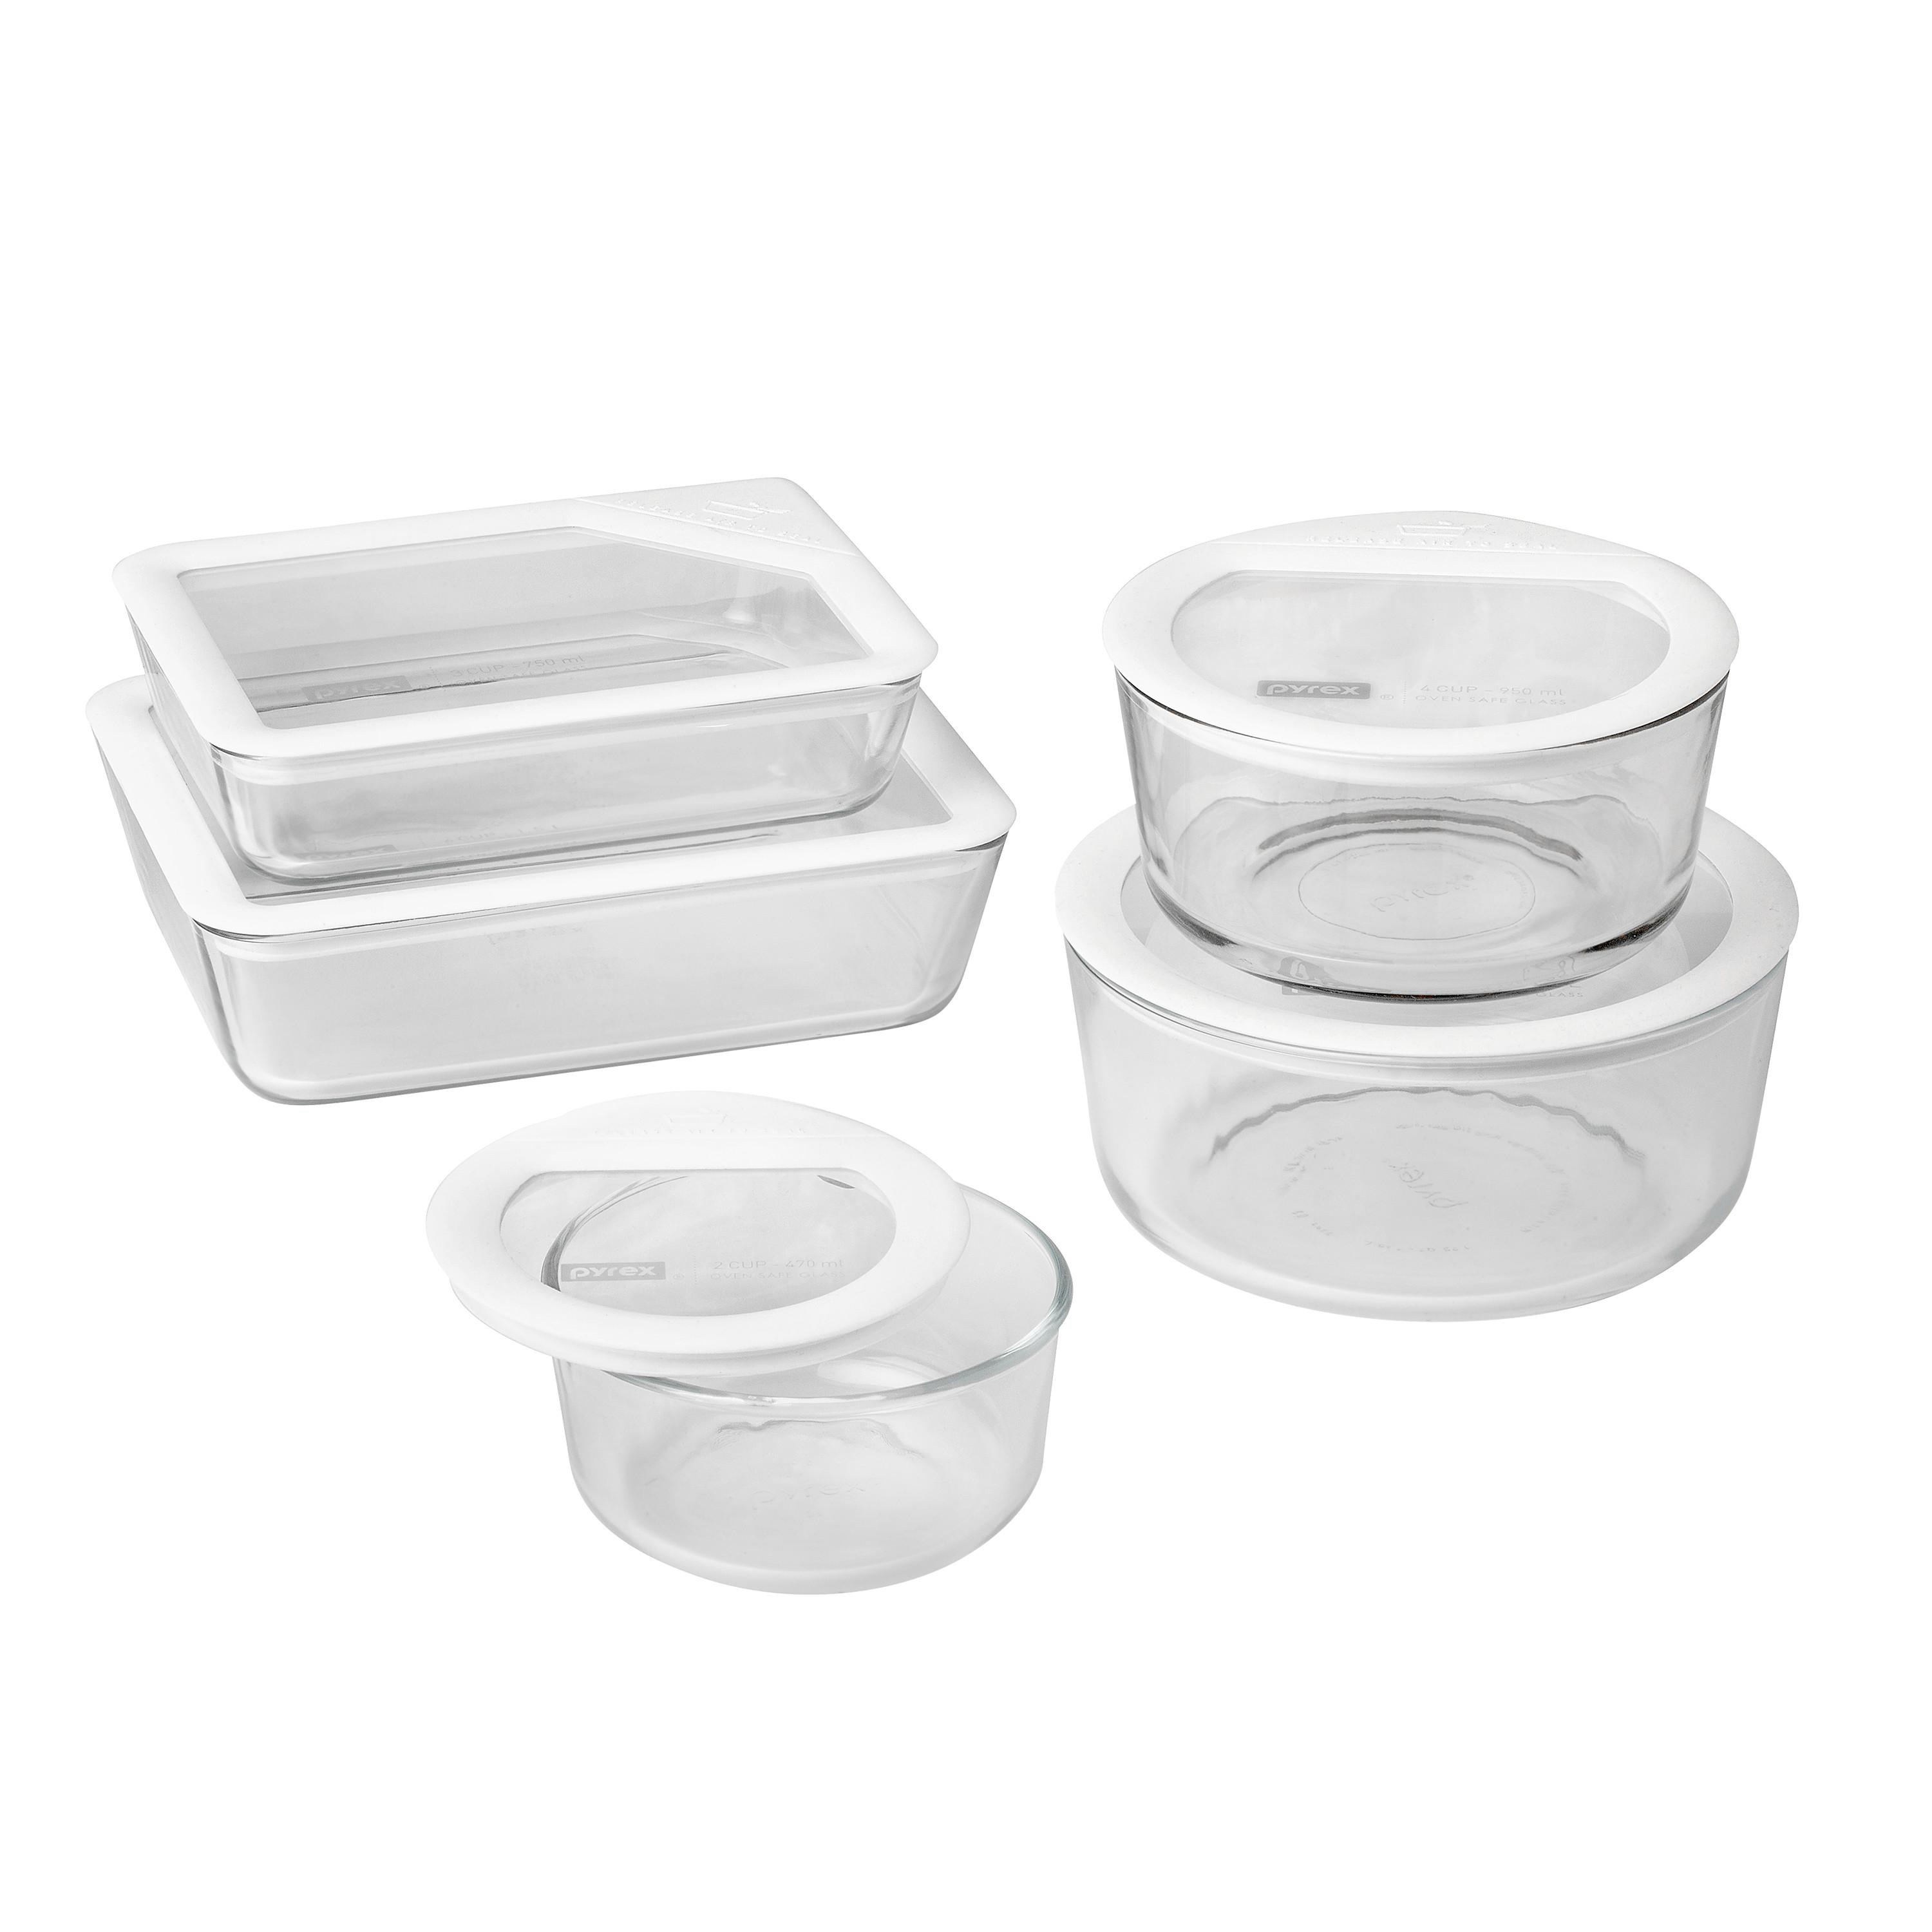 Pyrex 3 pc Measuring Cup Set · Pyrex 10 pc Ultimate Food Storate Set · Pyrex Easy Grab Pie Plate 2 pack 9.5 inch · Pyrex Easy Grab 28 pc Set ...  sc 1 st  Amazon.com & Amazon.com: Pyrex 2-Pack Easy Grab Glass Pie Plate 9.5-Inch ...